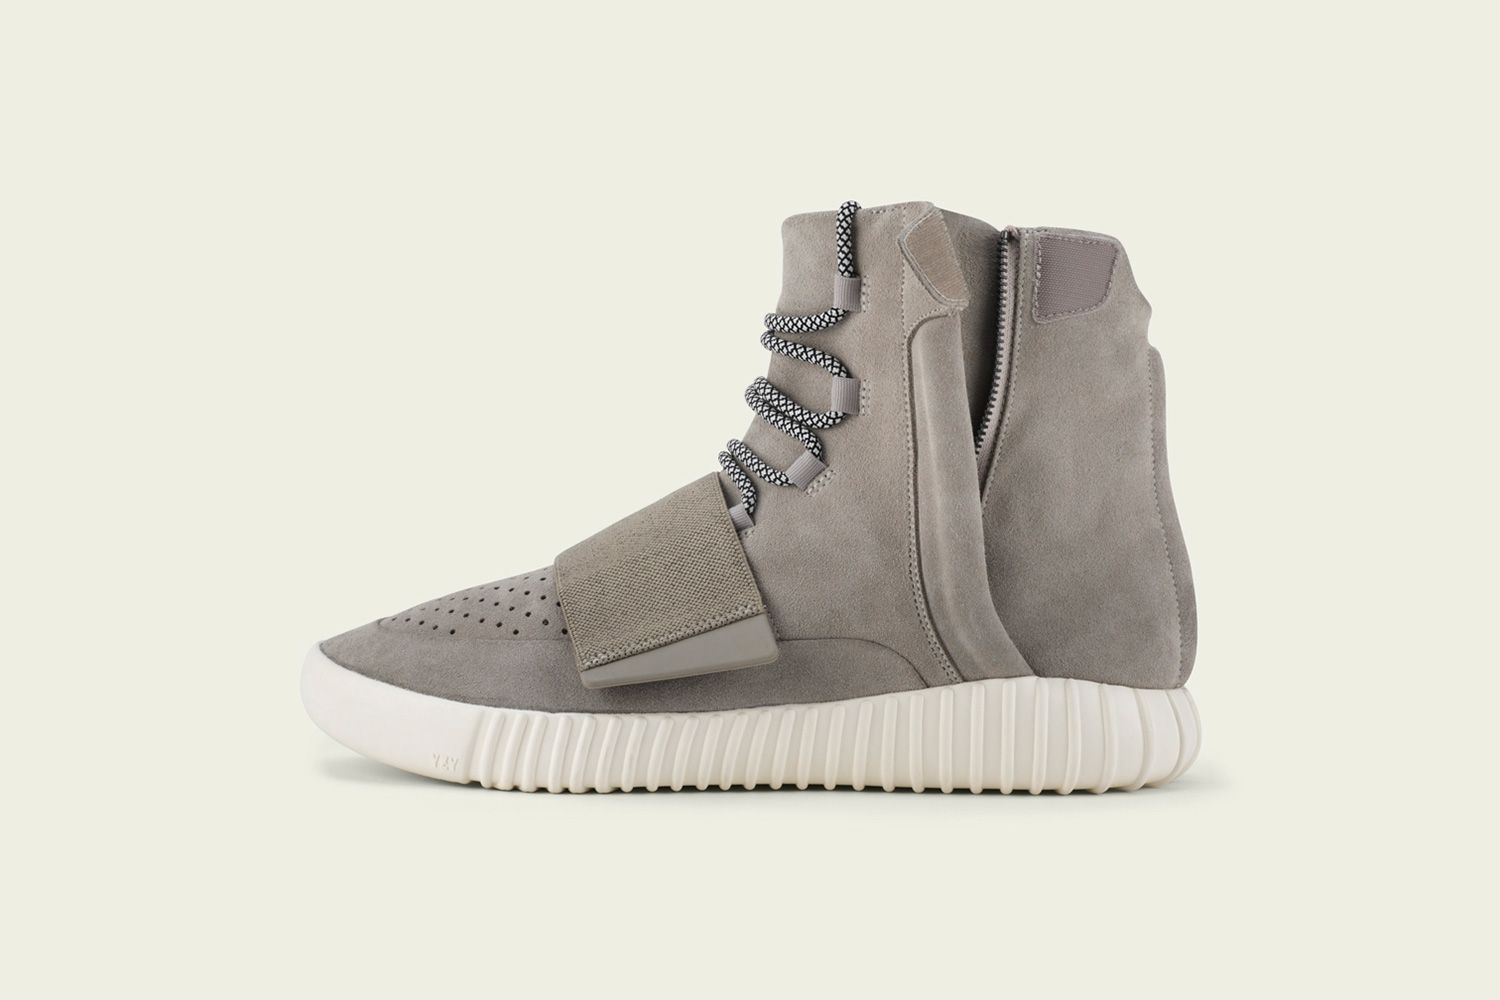 19ed6def57706 2016 West Yeezy 750 Boost Low Grey Shoes Men Women PrimeKnit Casual shoes  Sport running shoes